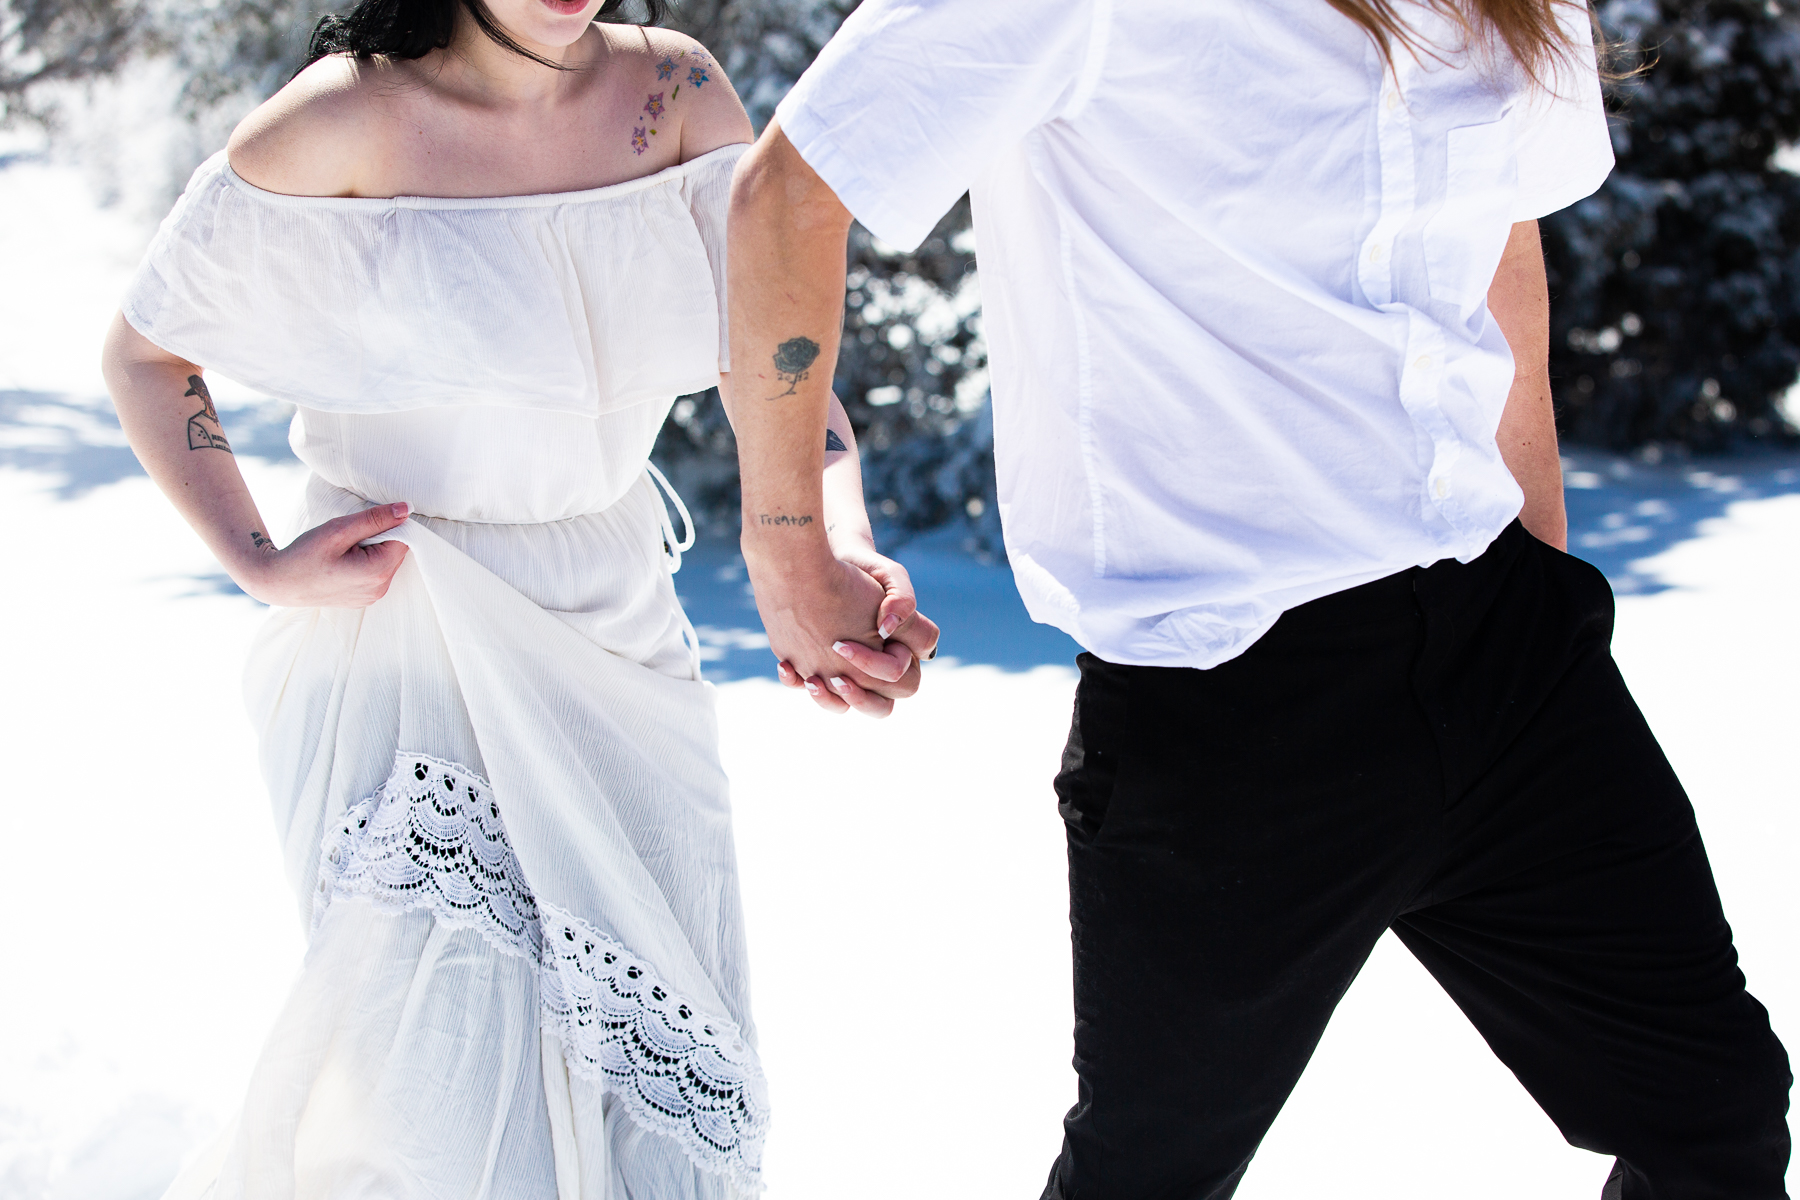 Colorado Photographers for Mountain Weddings in the Snow | The groom takes his wife's hand